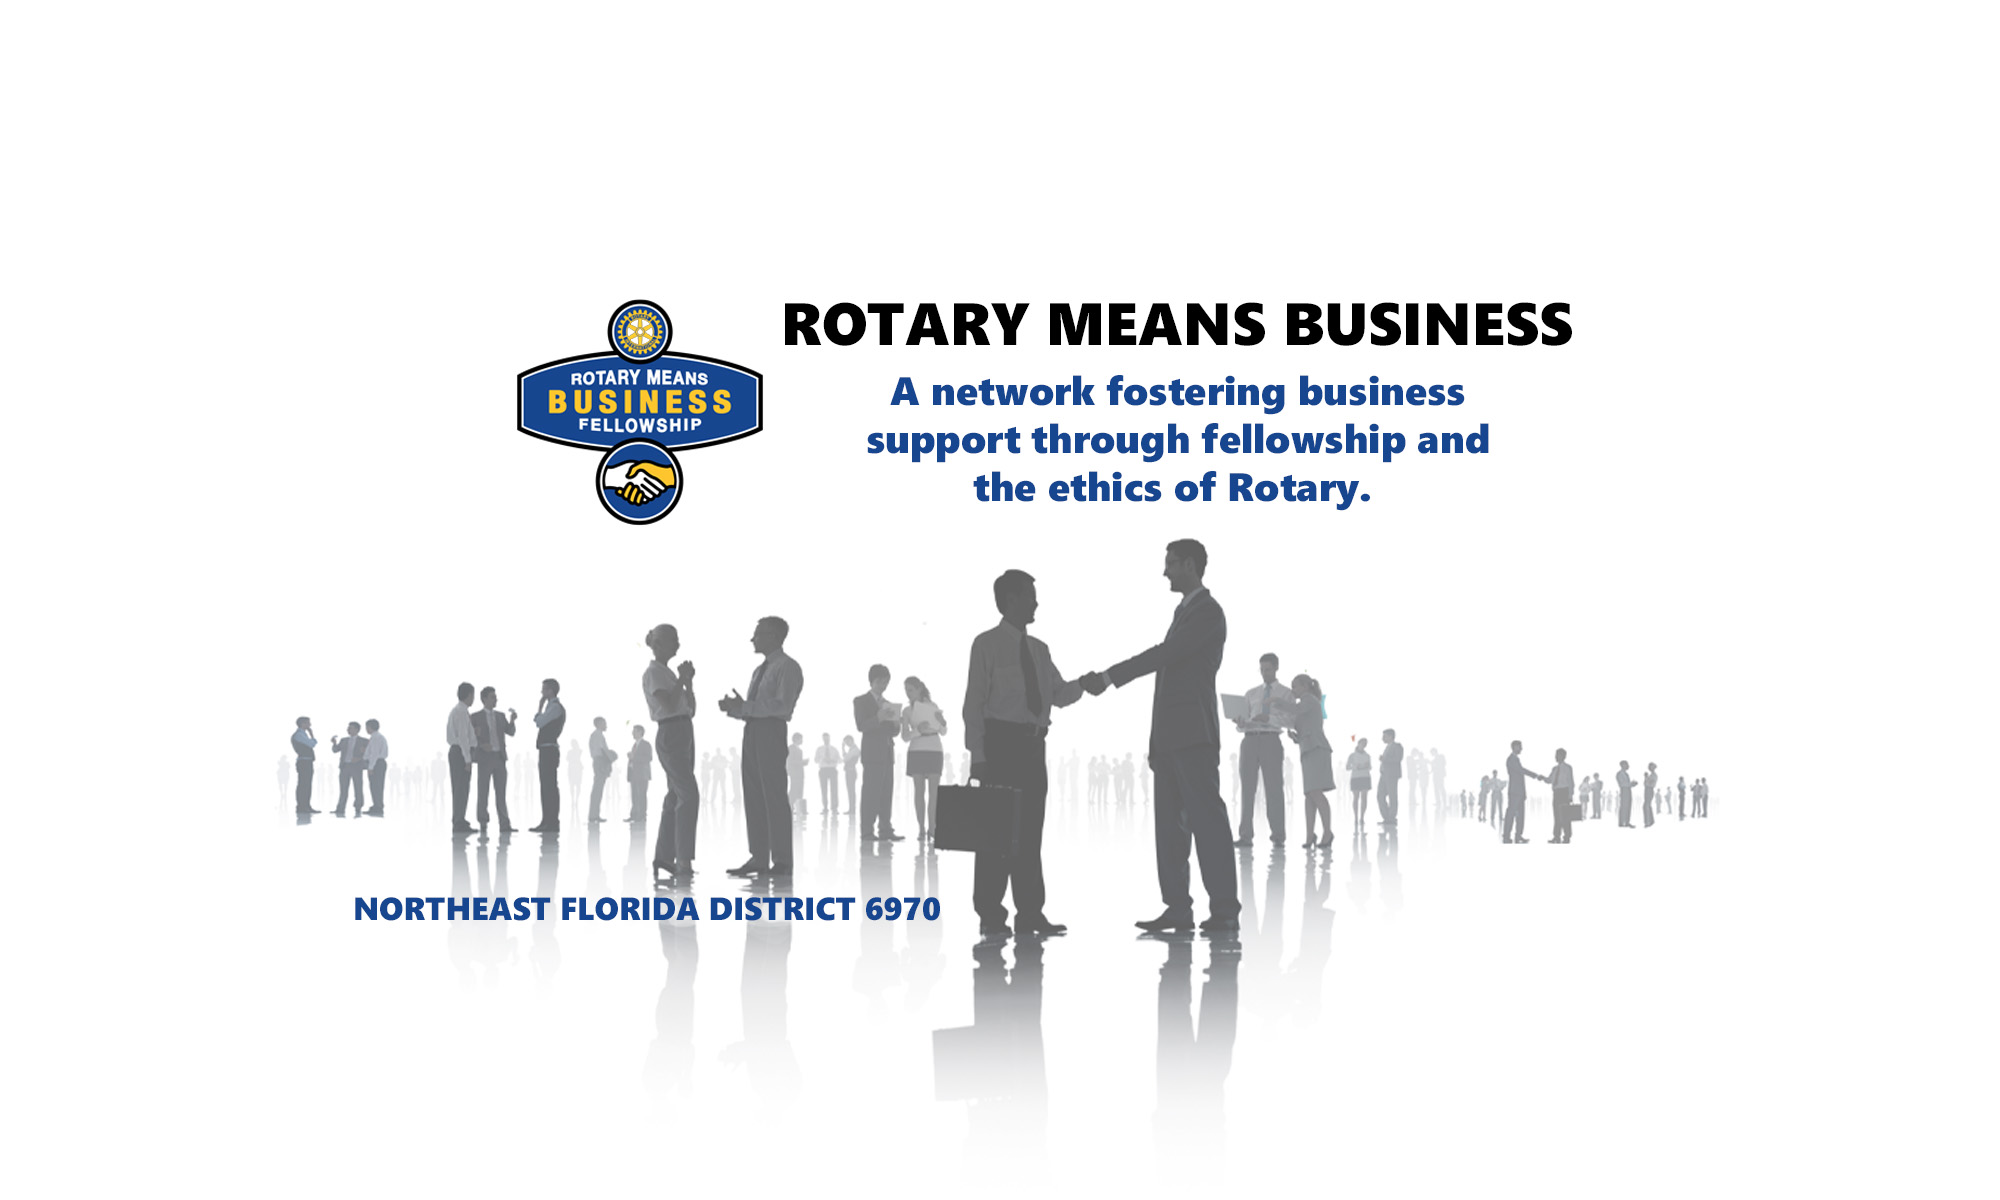 Rotary Means Business 6970